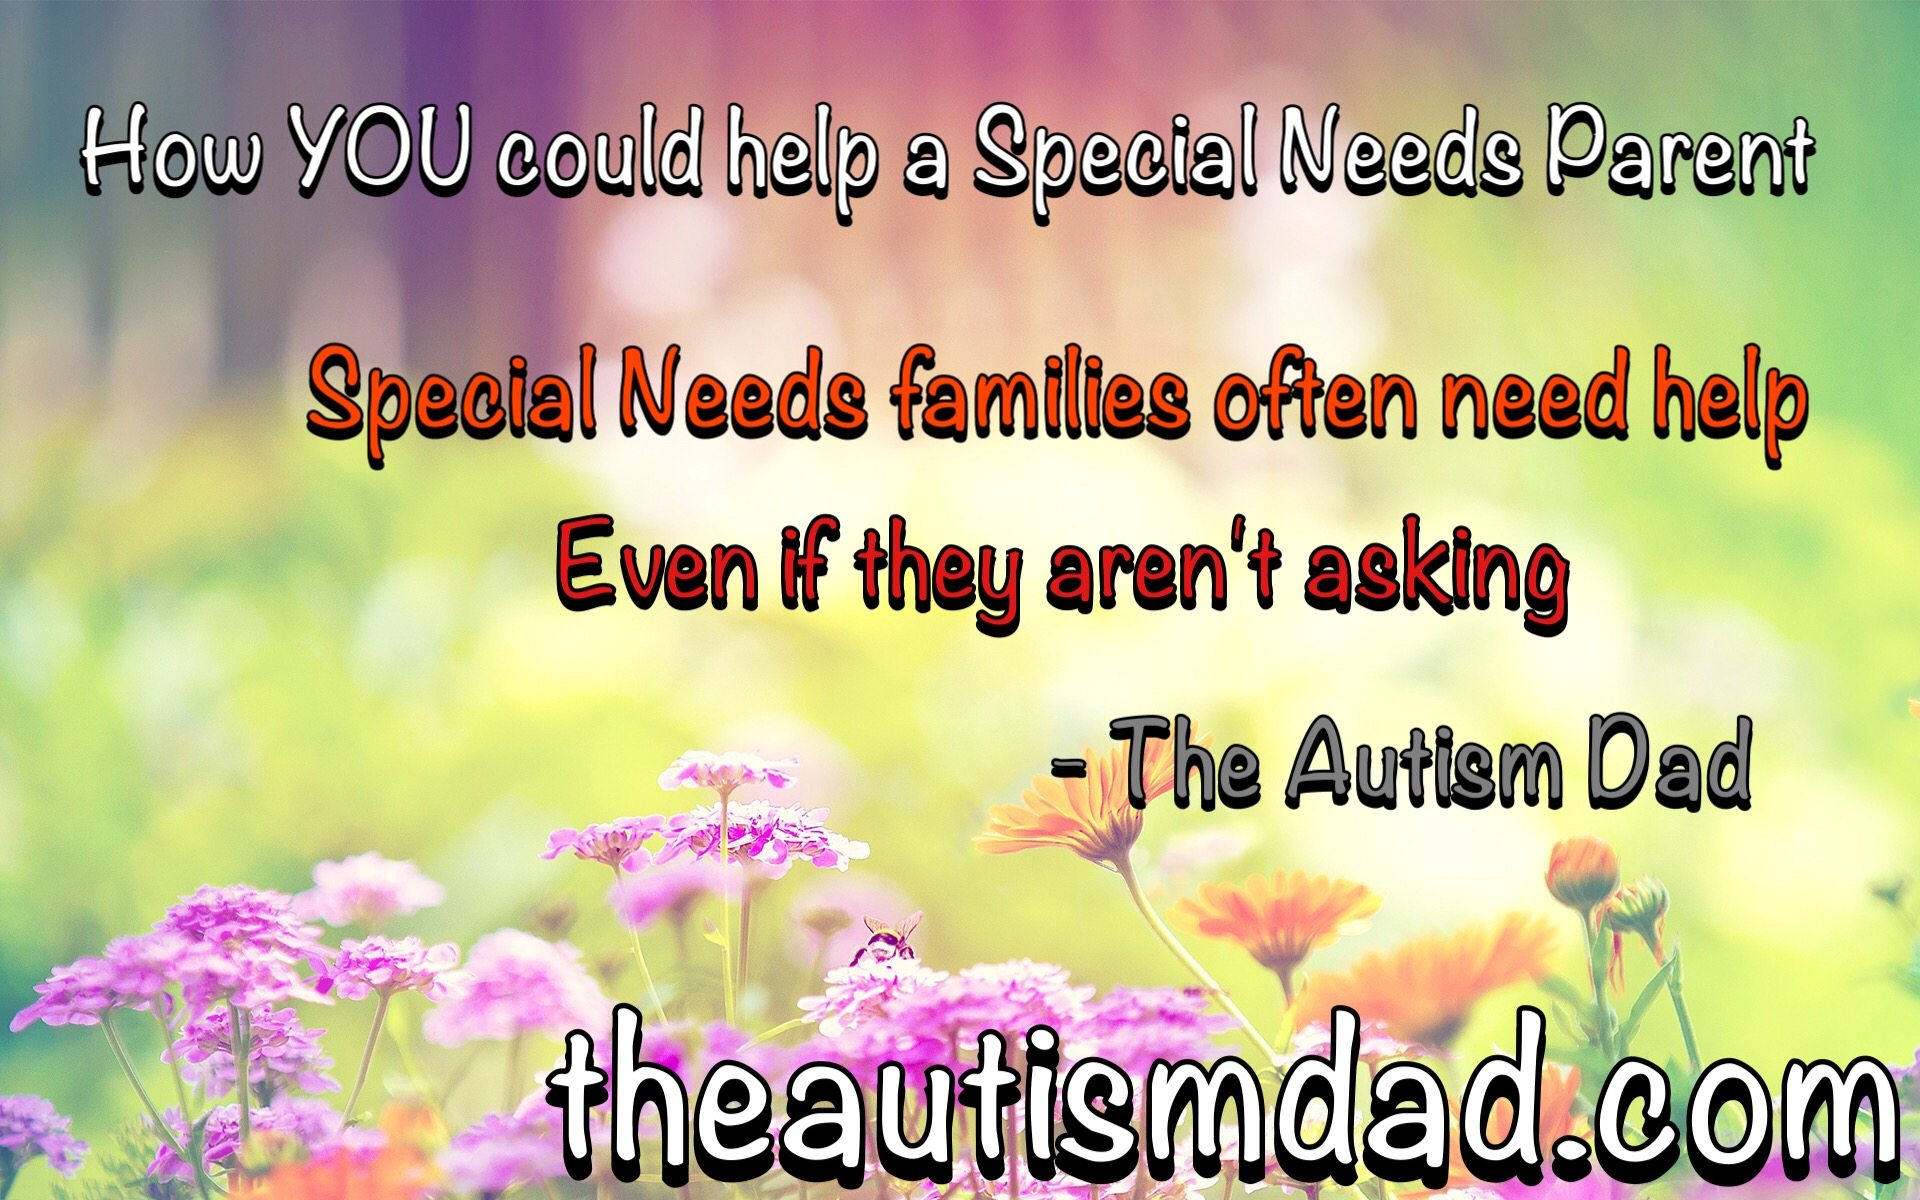 A few ways you can help a special needs parent